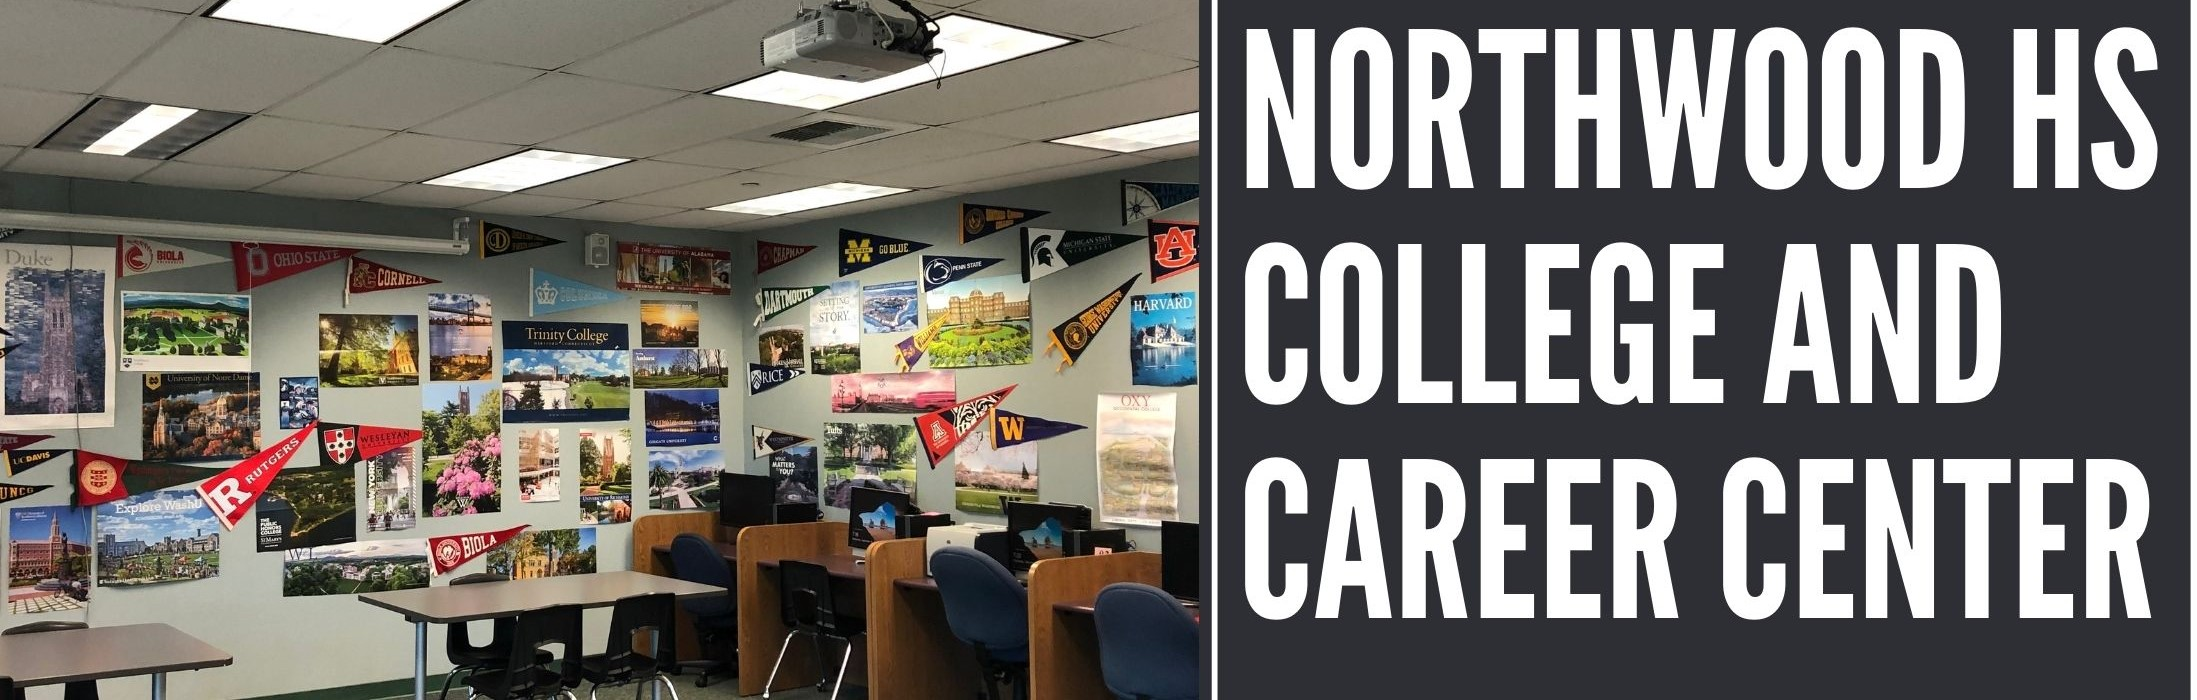 Welcome to the NHS College and Career Center